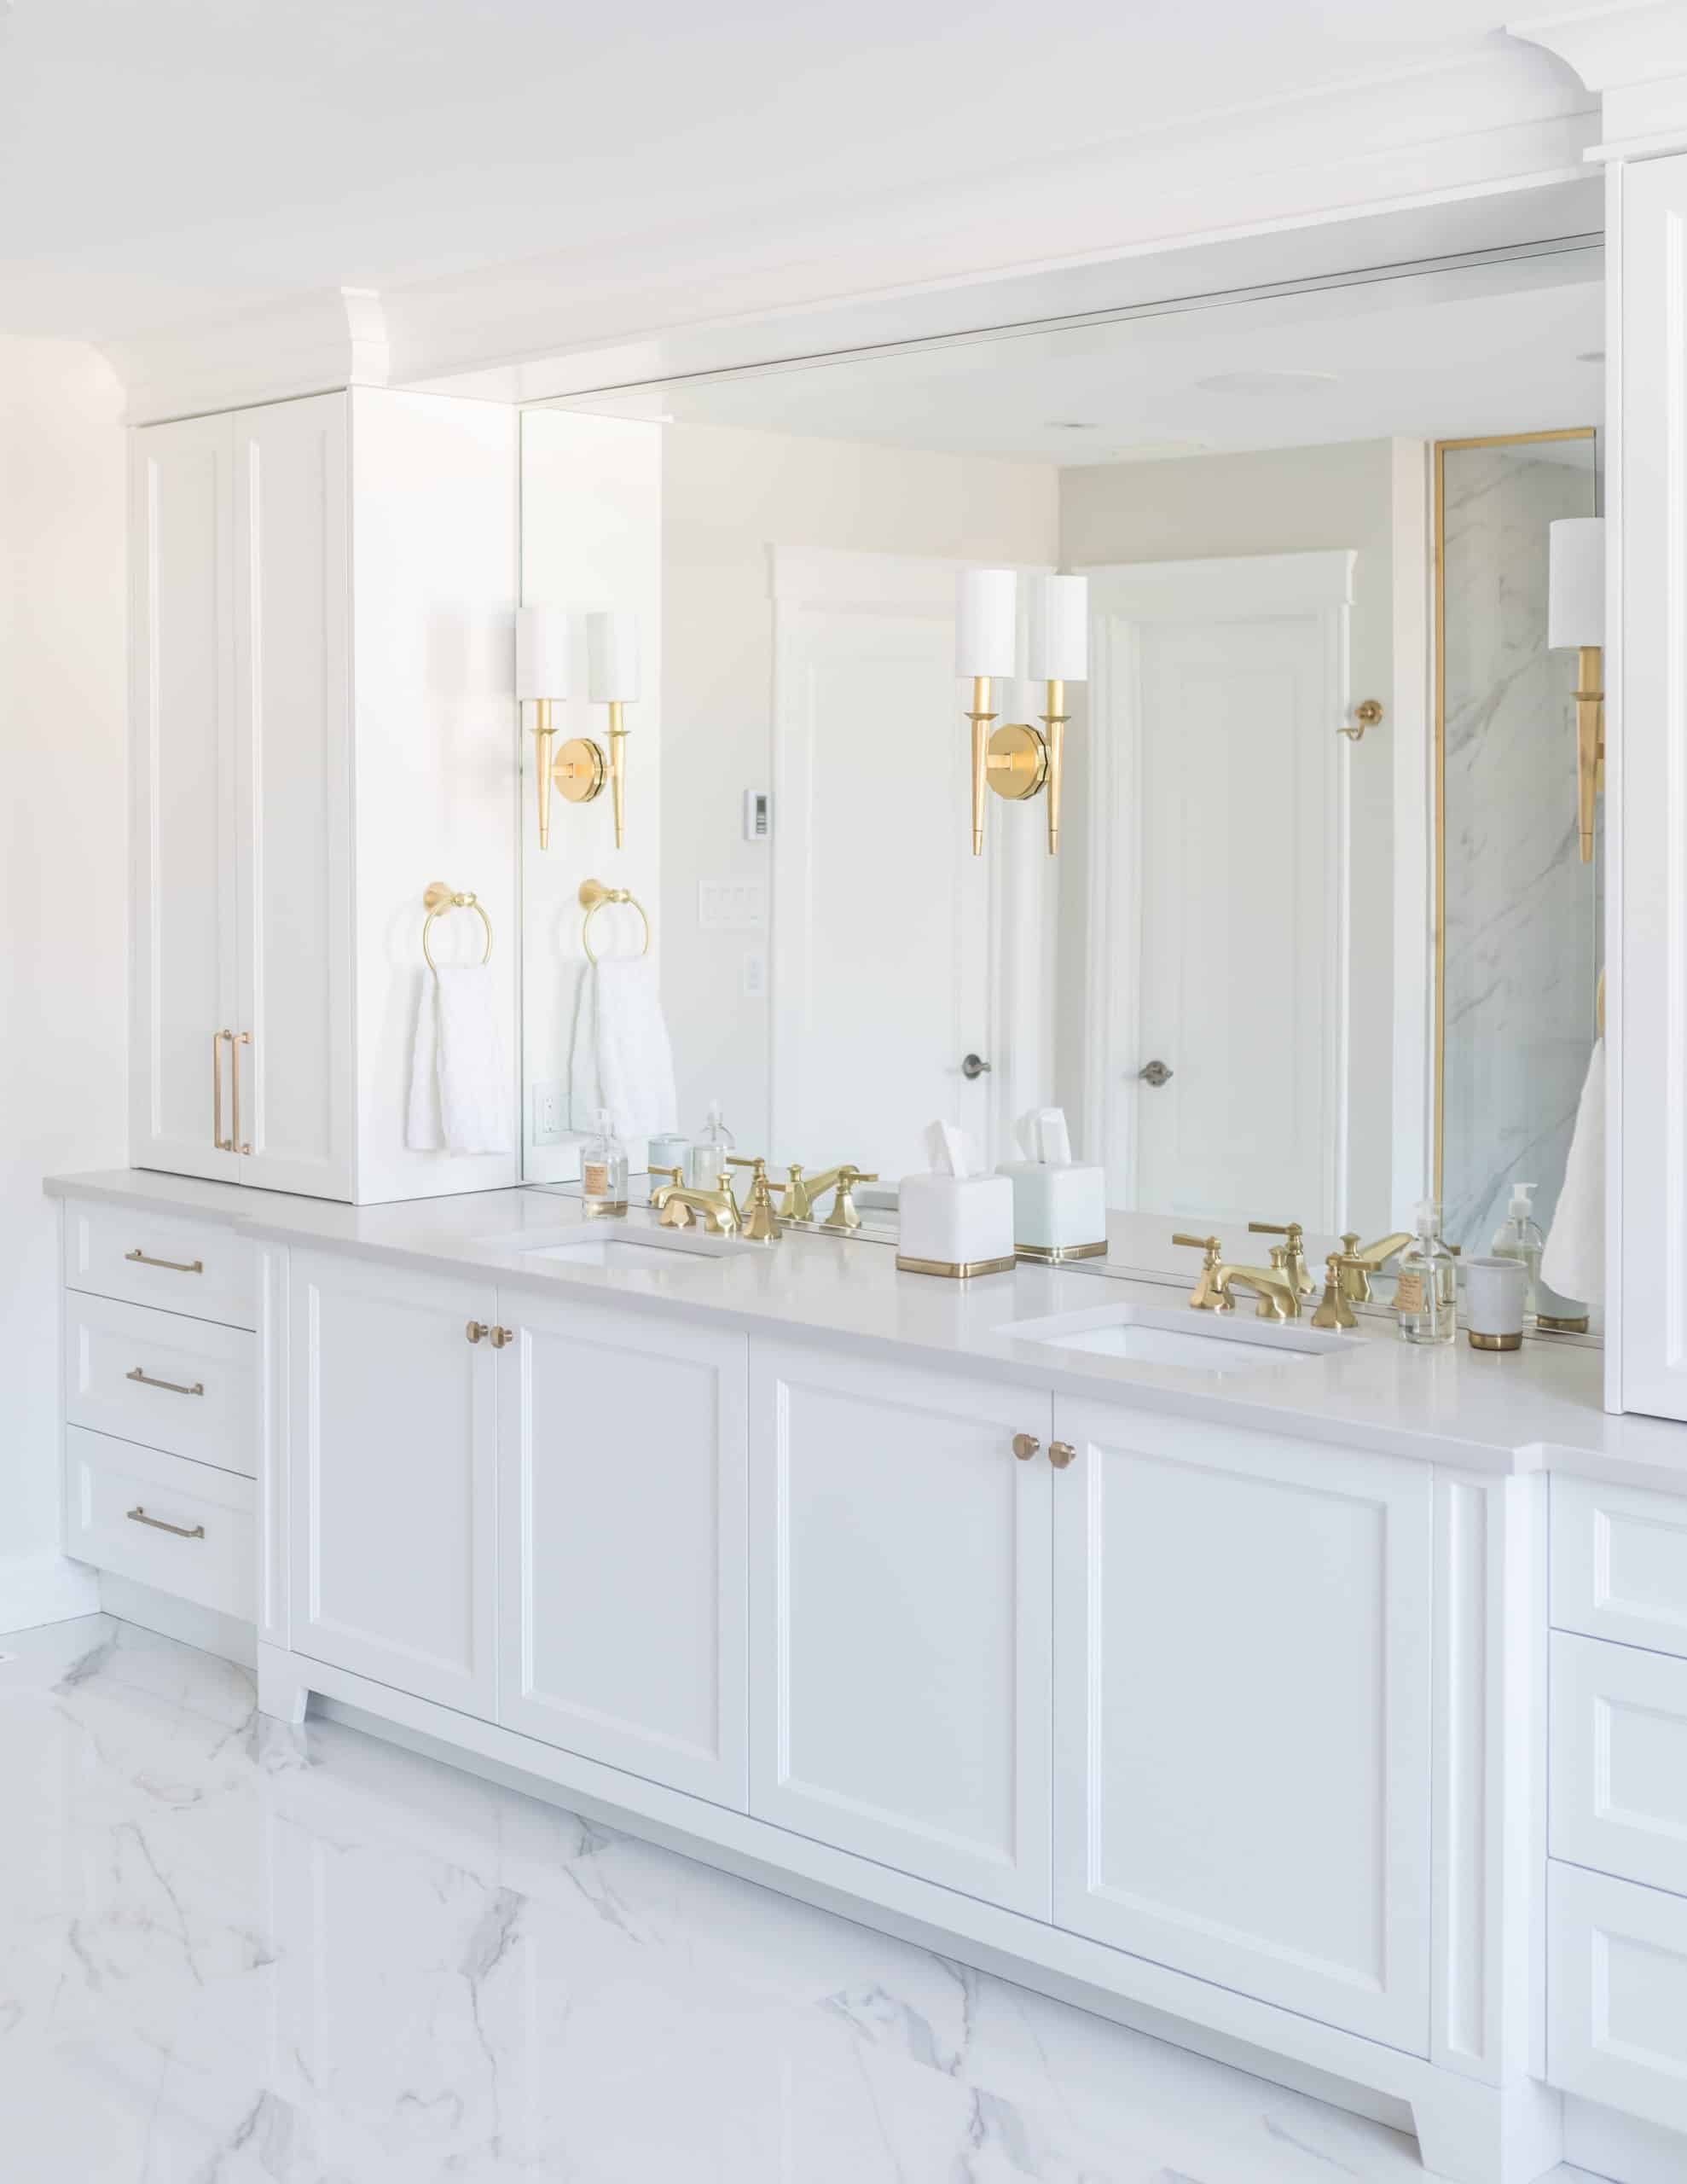 White double vanity with two golden faucets